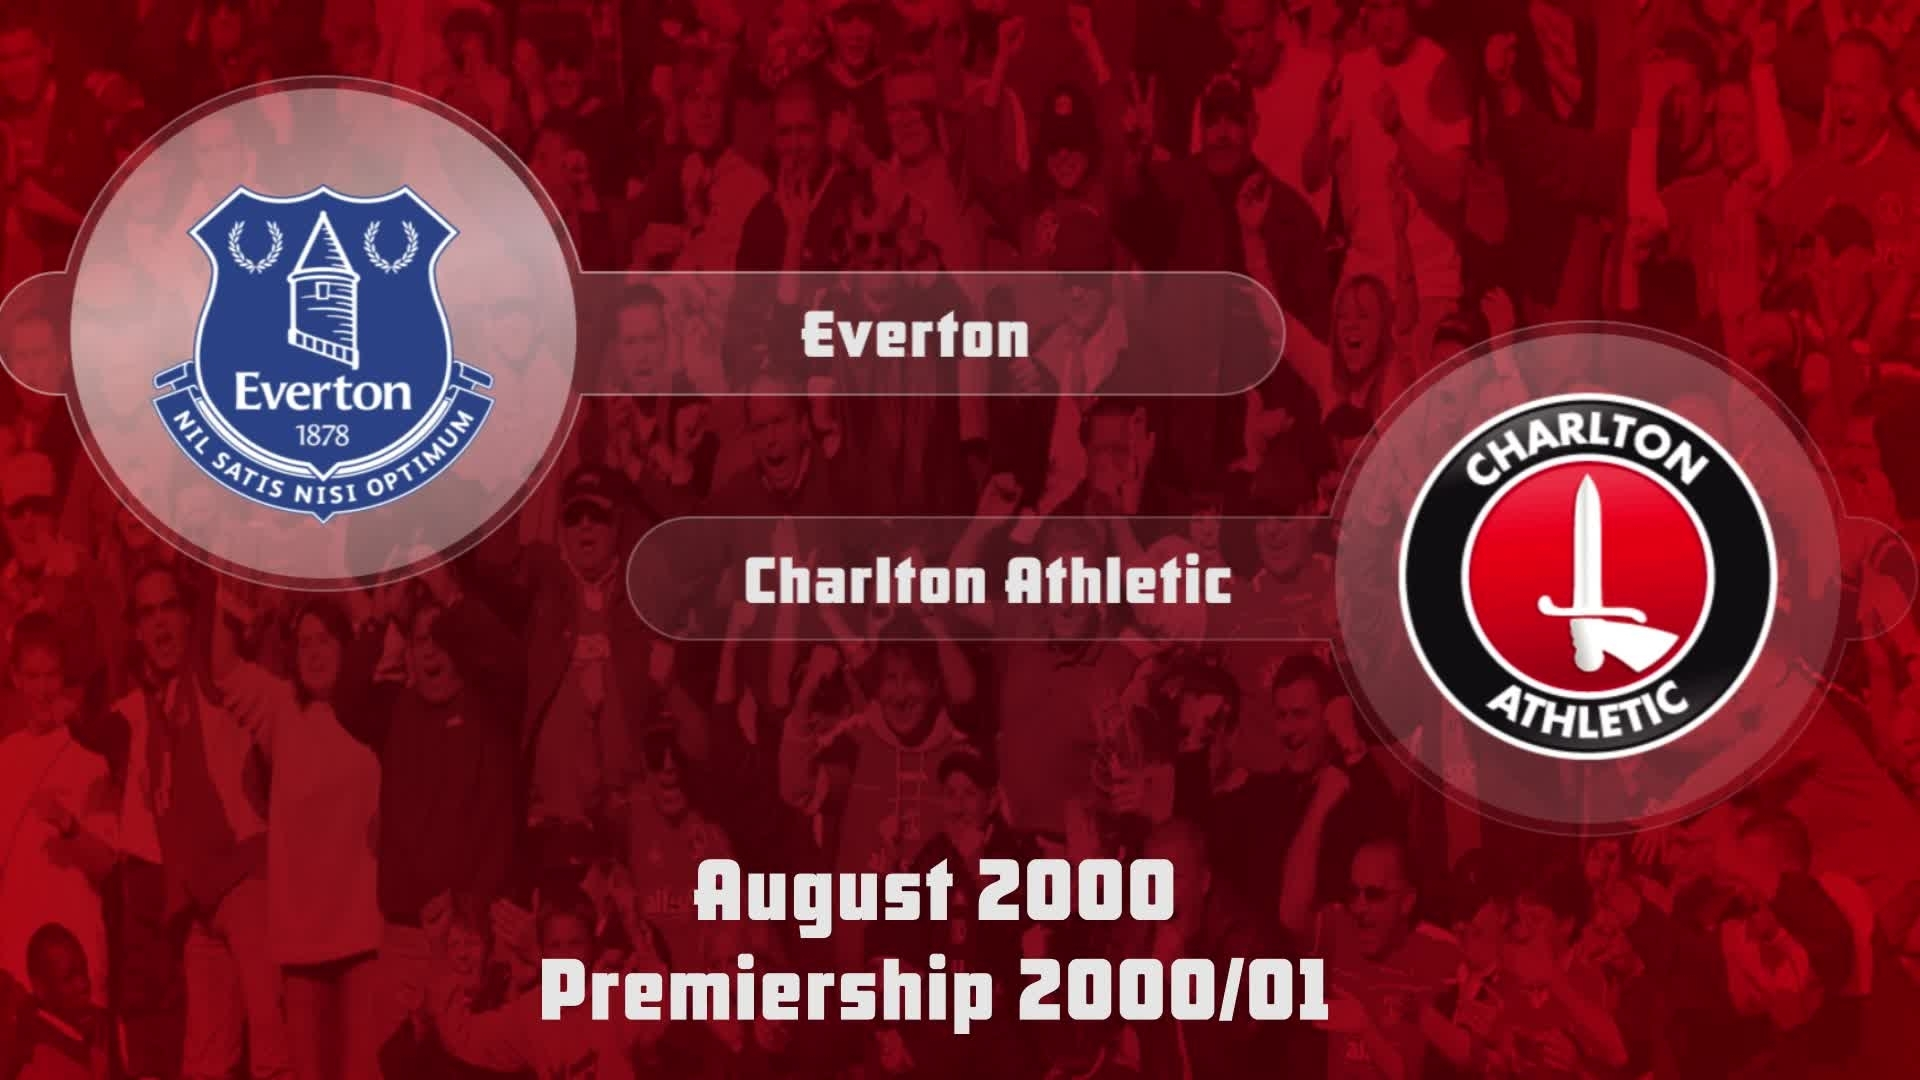 02 HIGHLIGHTS | Everton 3 Charlton 0 (Aug 2000)